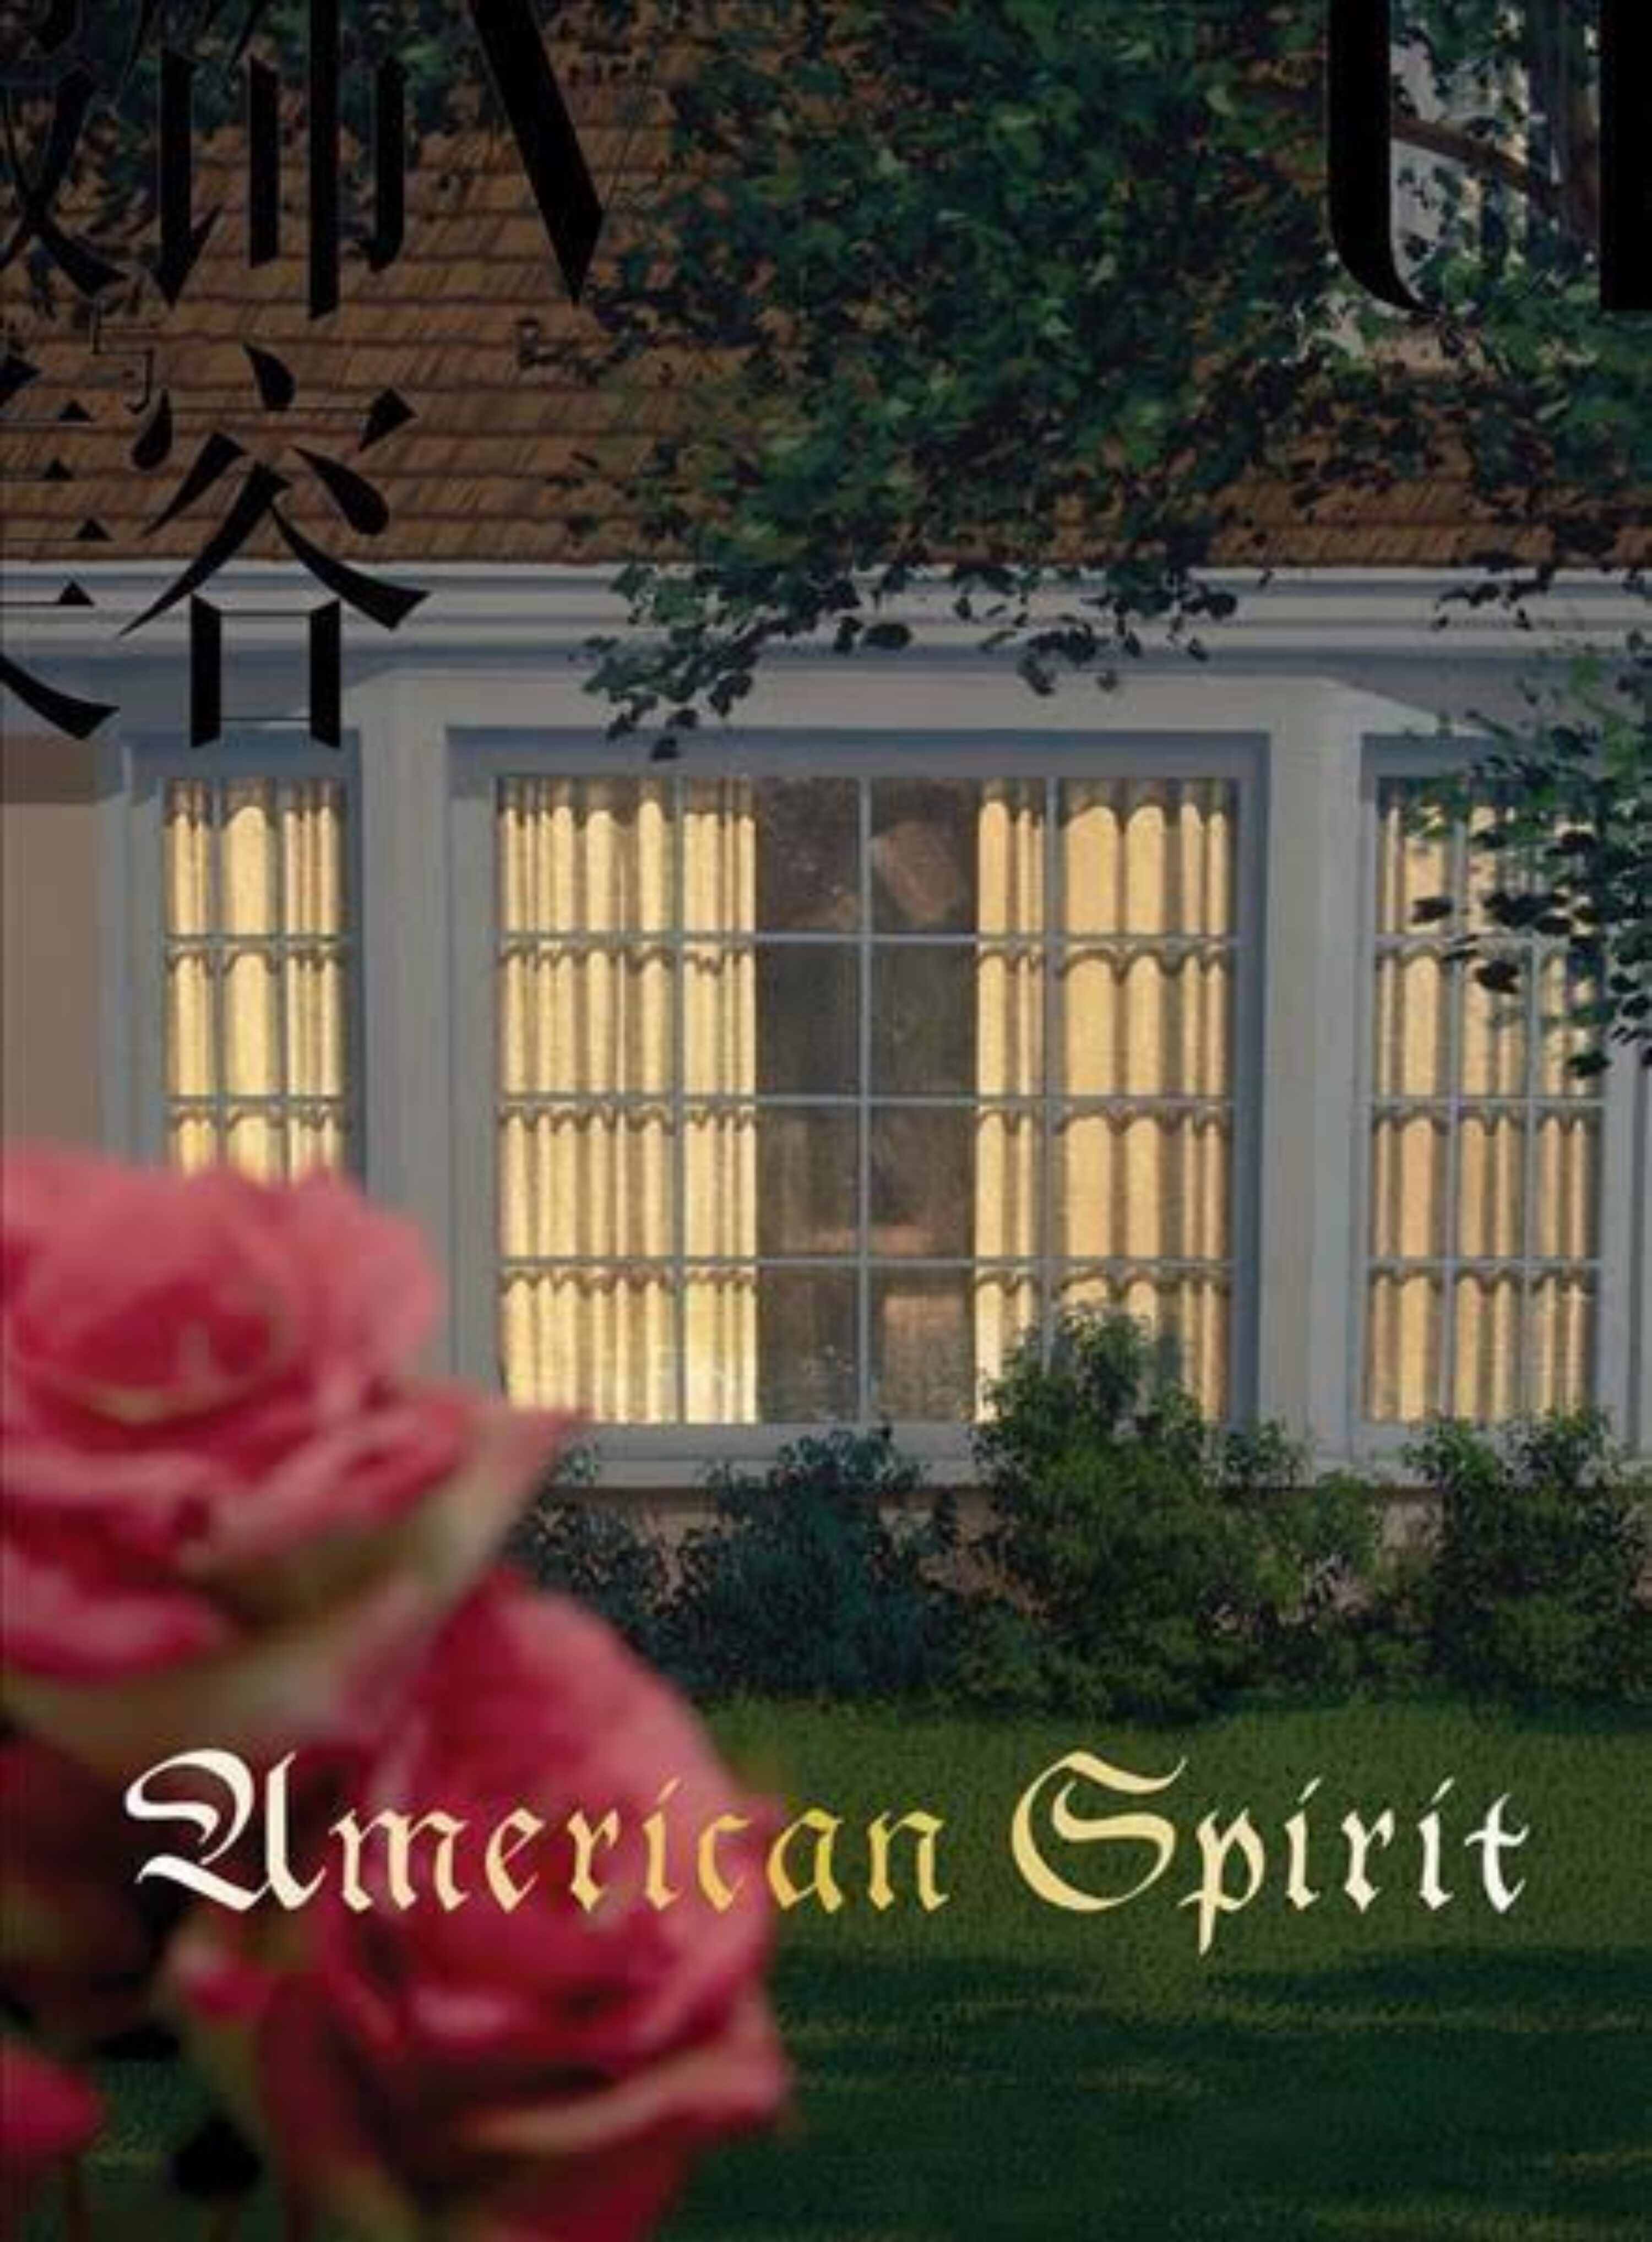 Image of the front cover of American Spirit